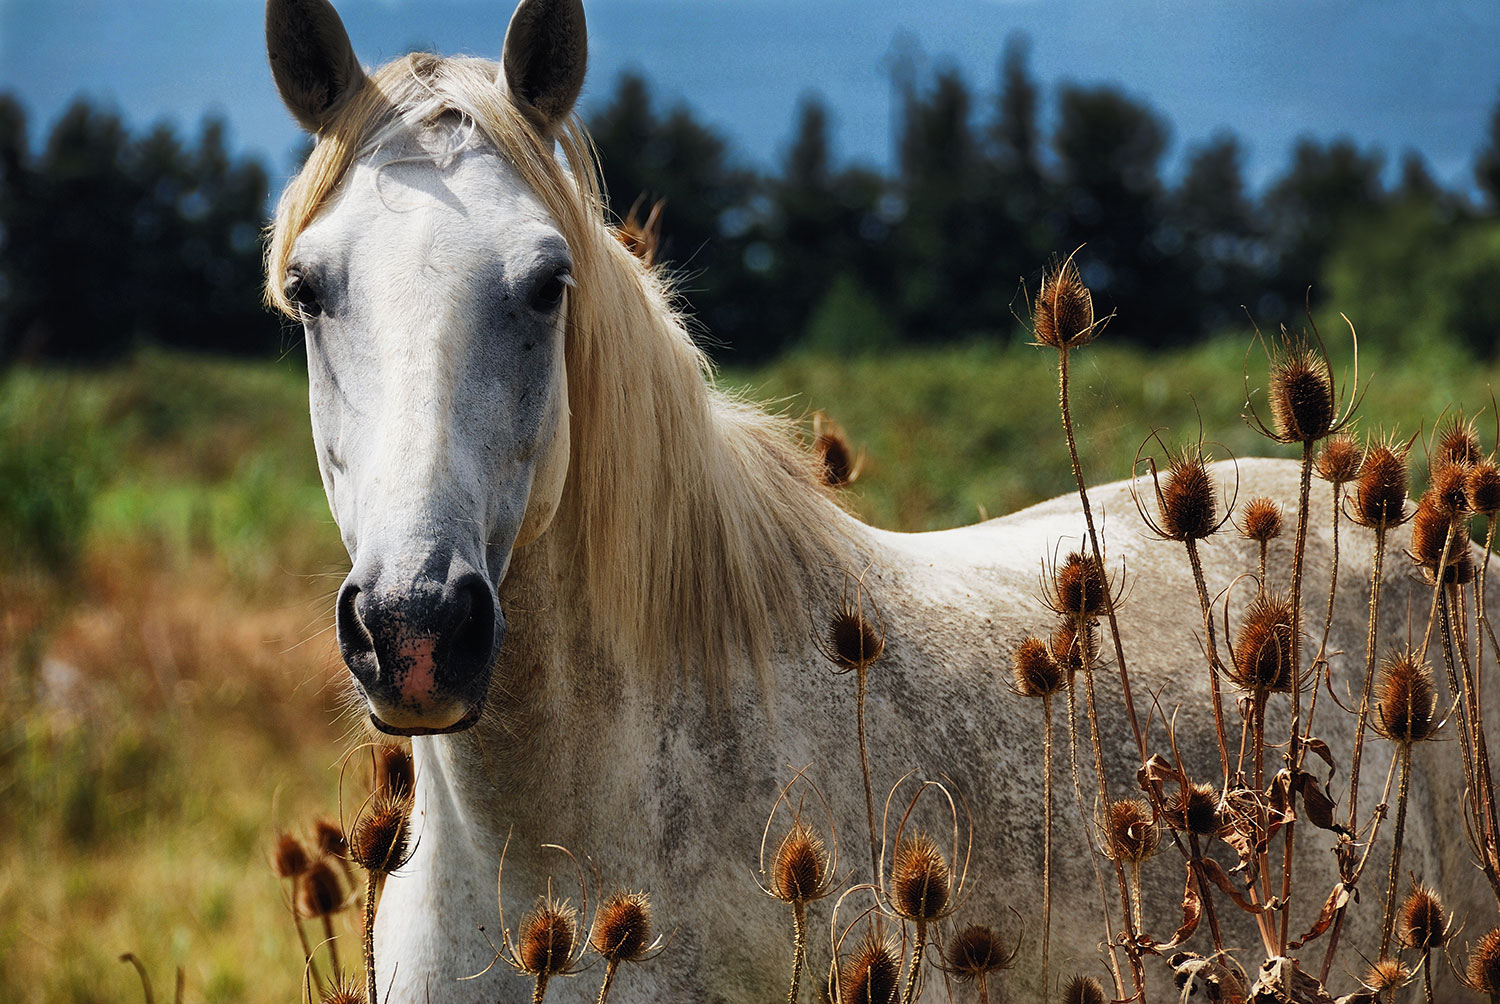 horse amongst the thistle